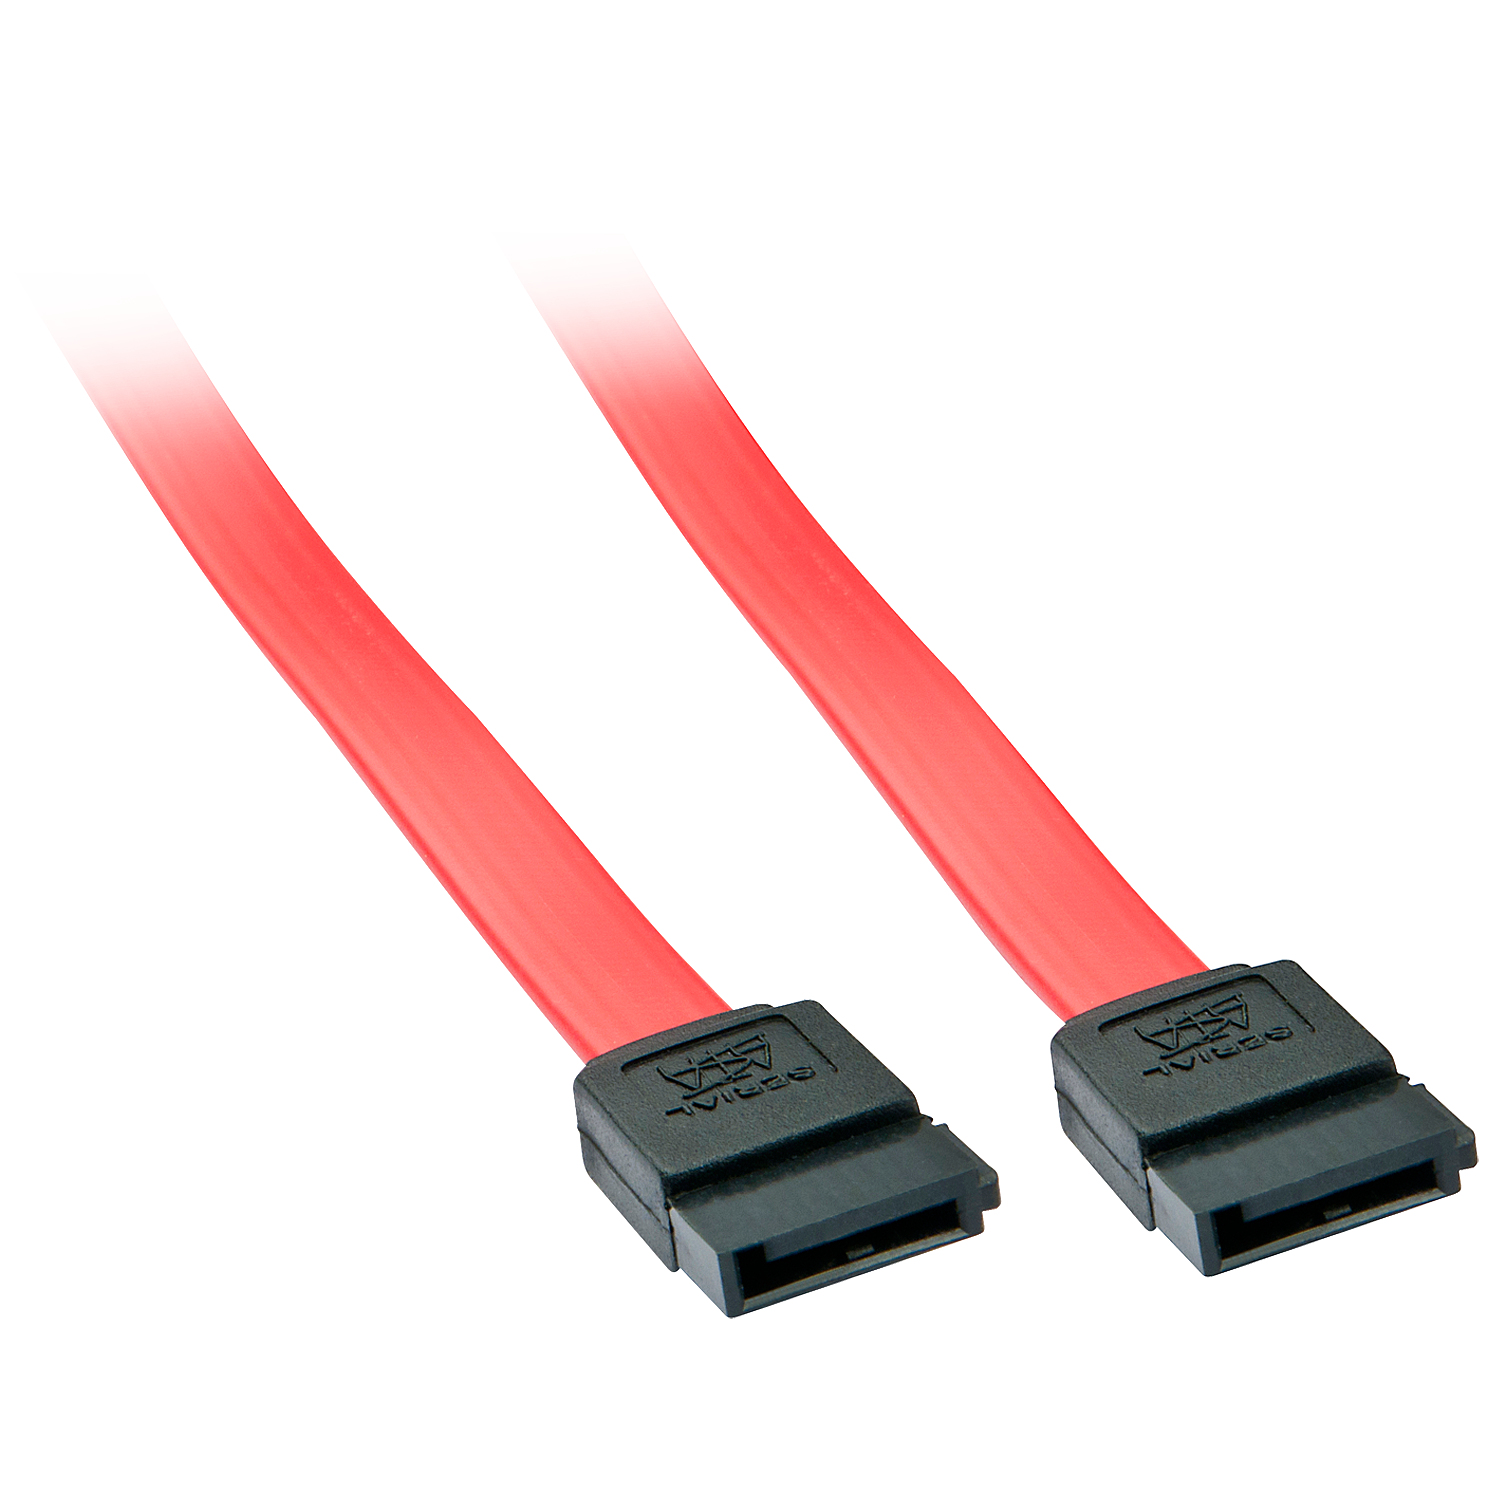 LINDY 33323 SATA CABLE 0.2 M RED 7-PIN